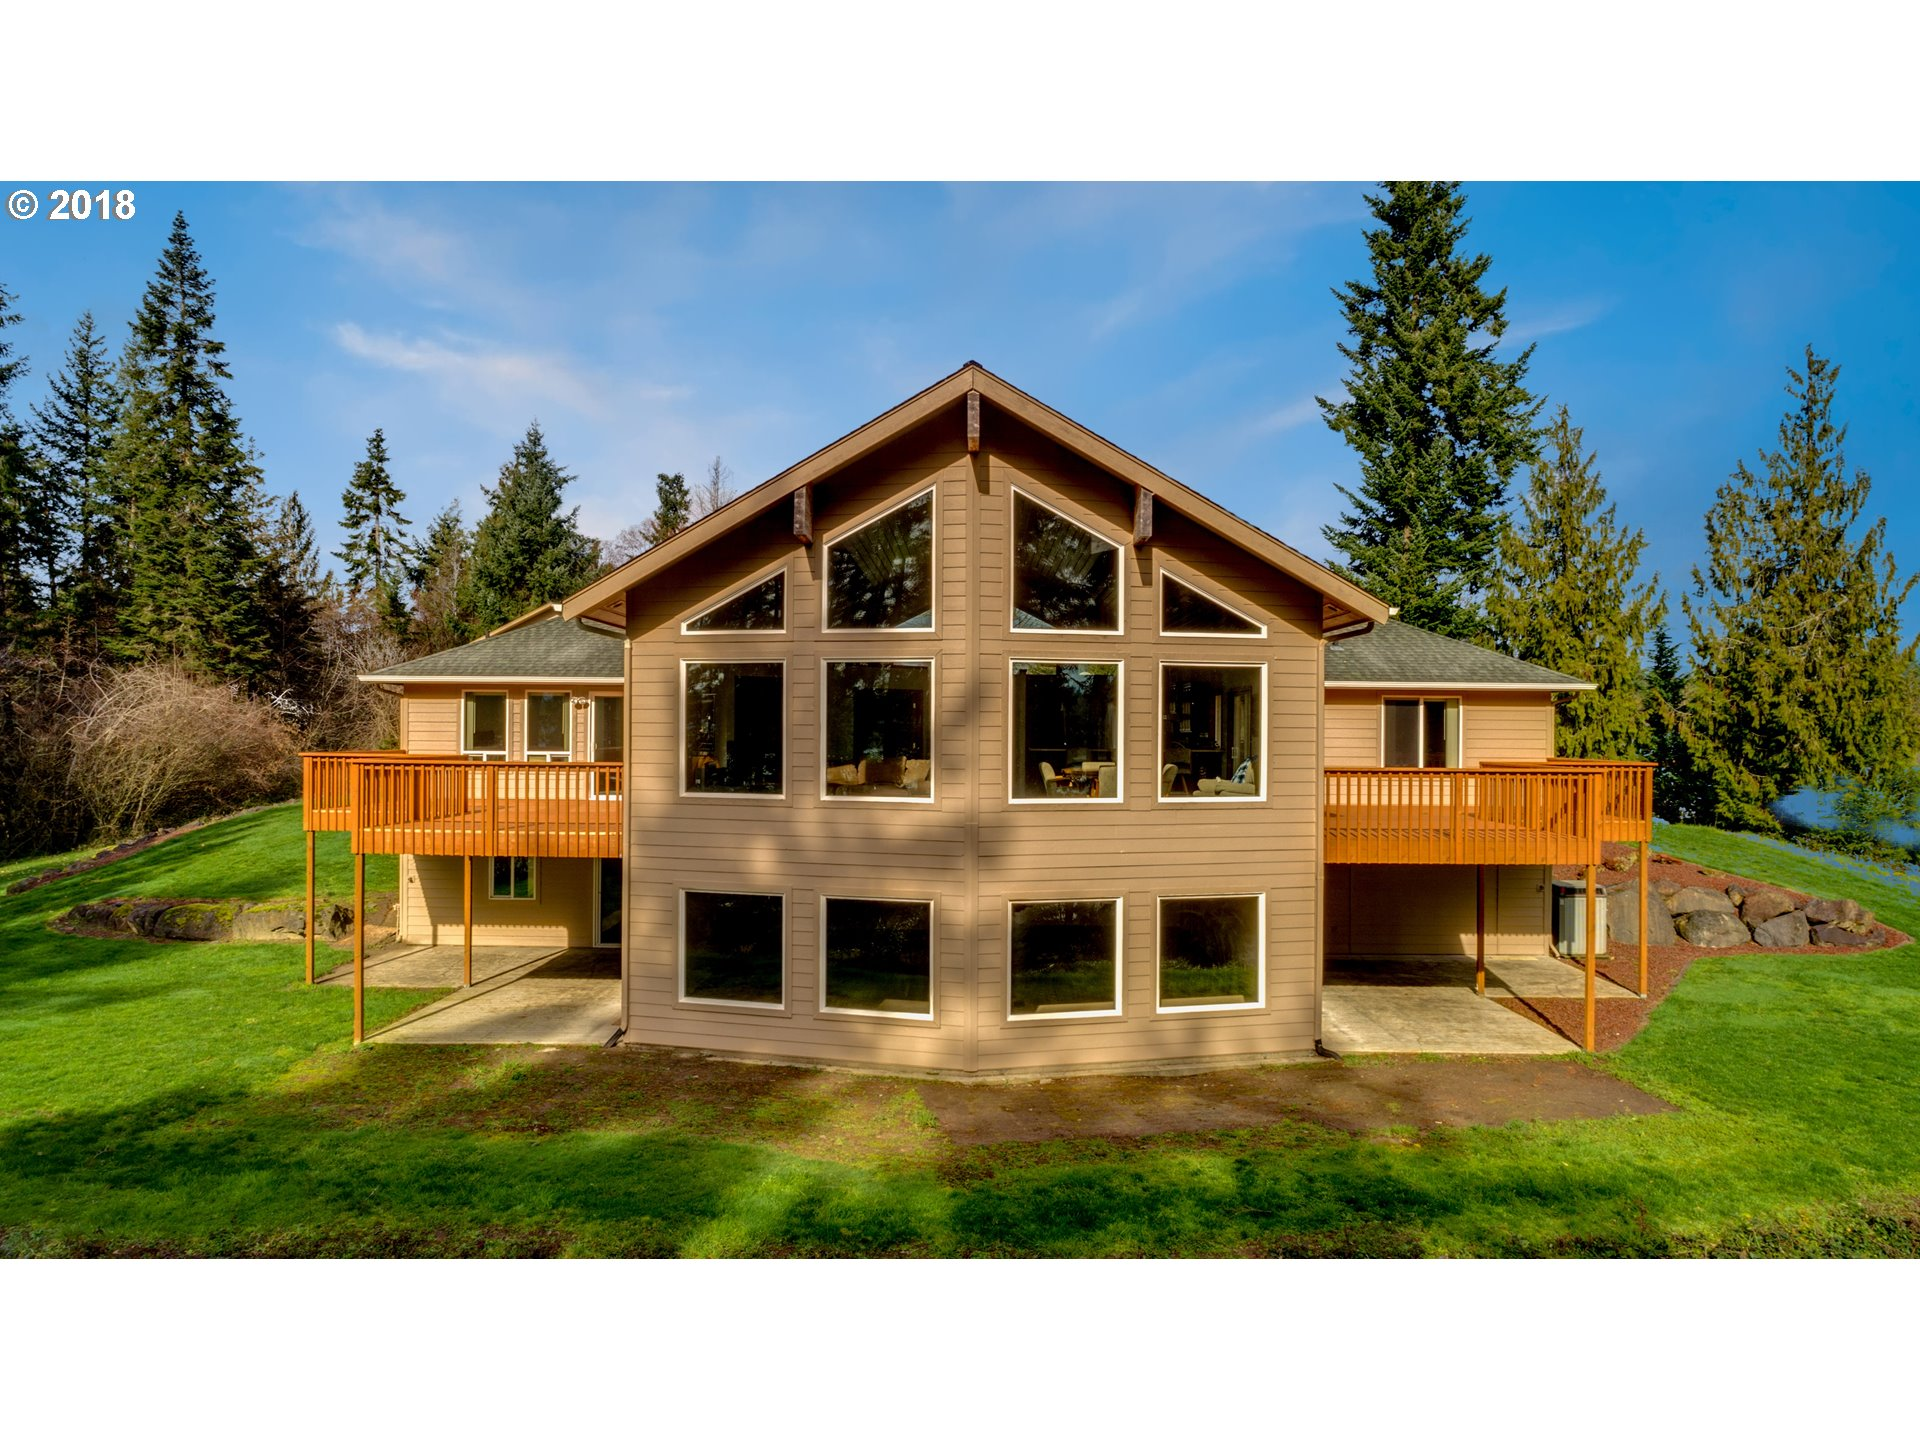 36407 NE WASHOUGAL RIVER RD